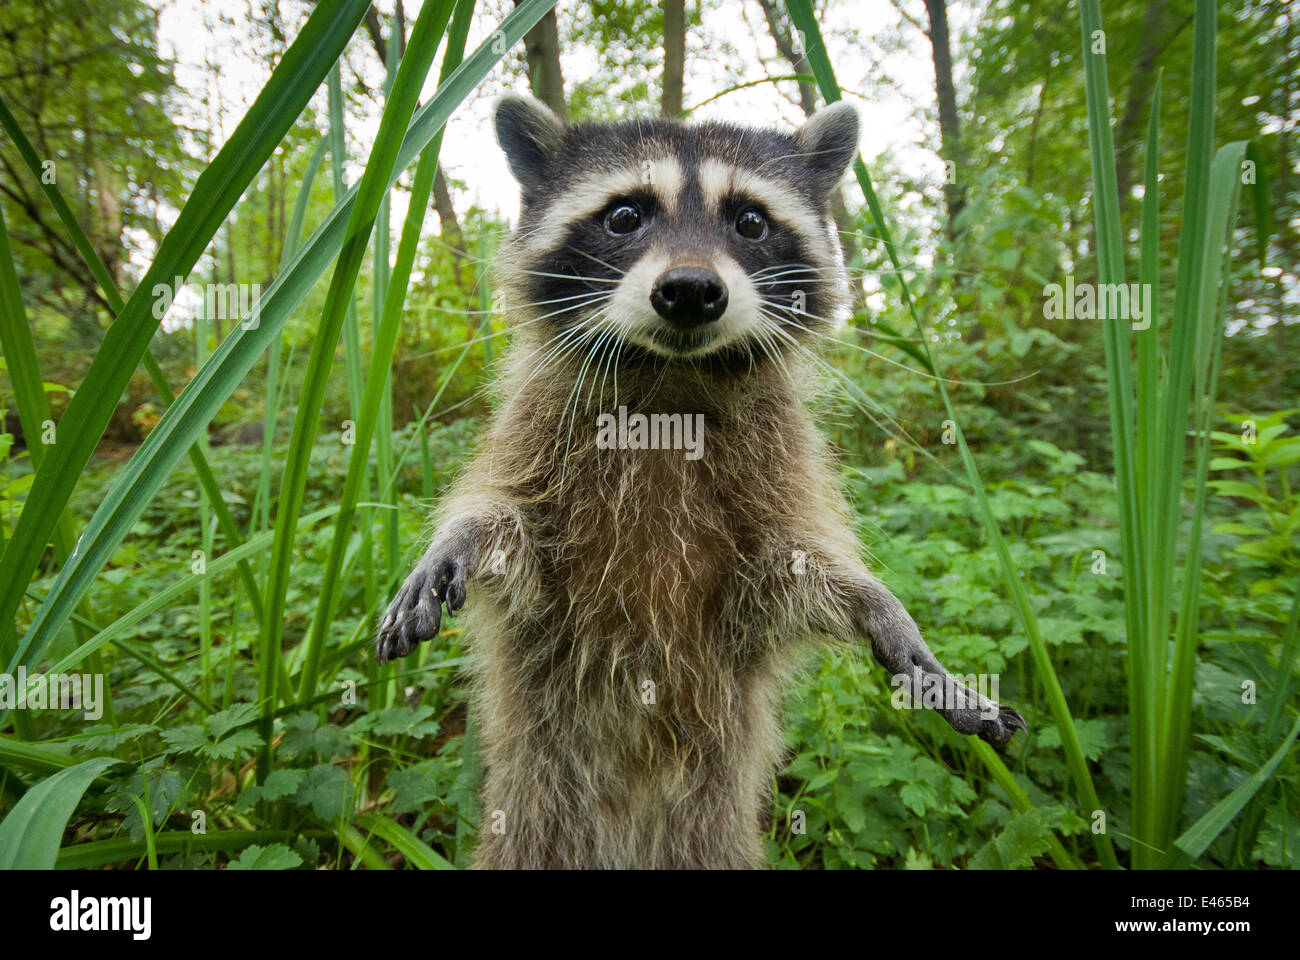 Raccoon (Procyon lotor) standing up investigating camera, portrait, Stanley park, Vancouver, British Columbia, Cananda, - Stock Image